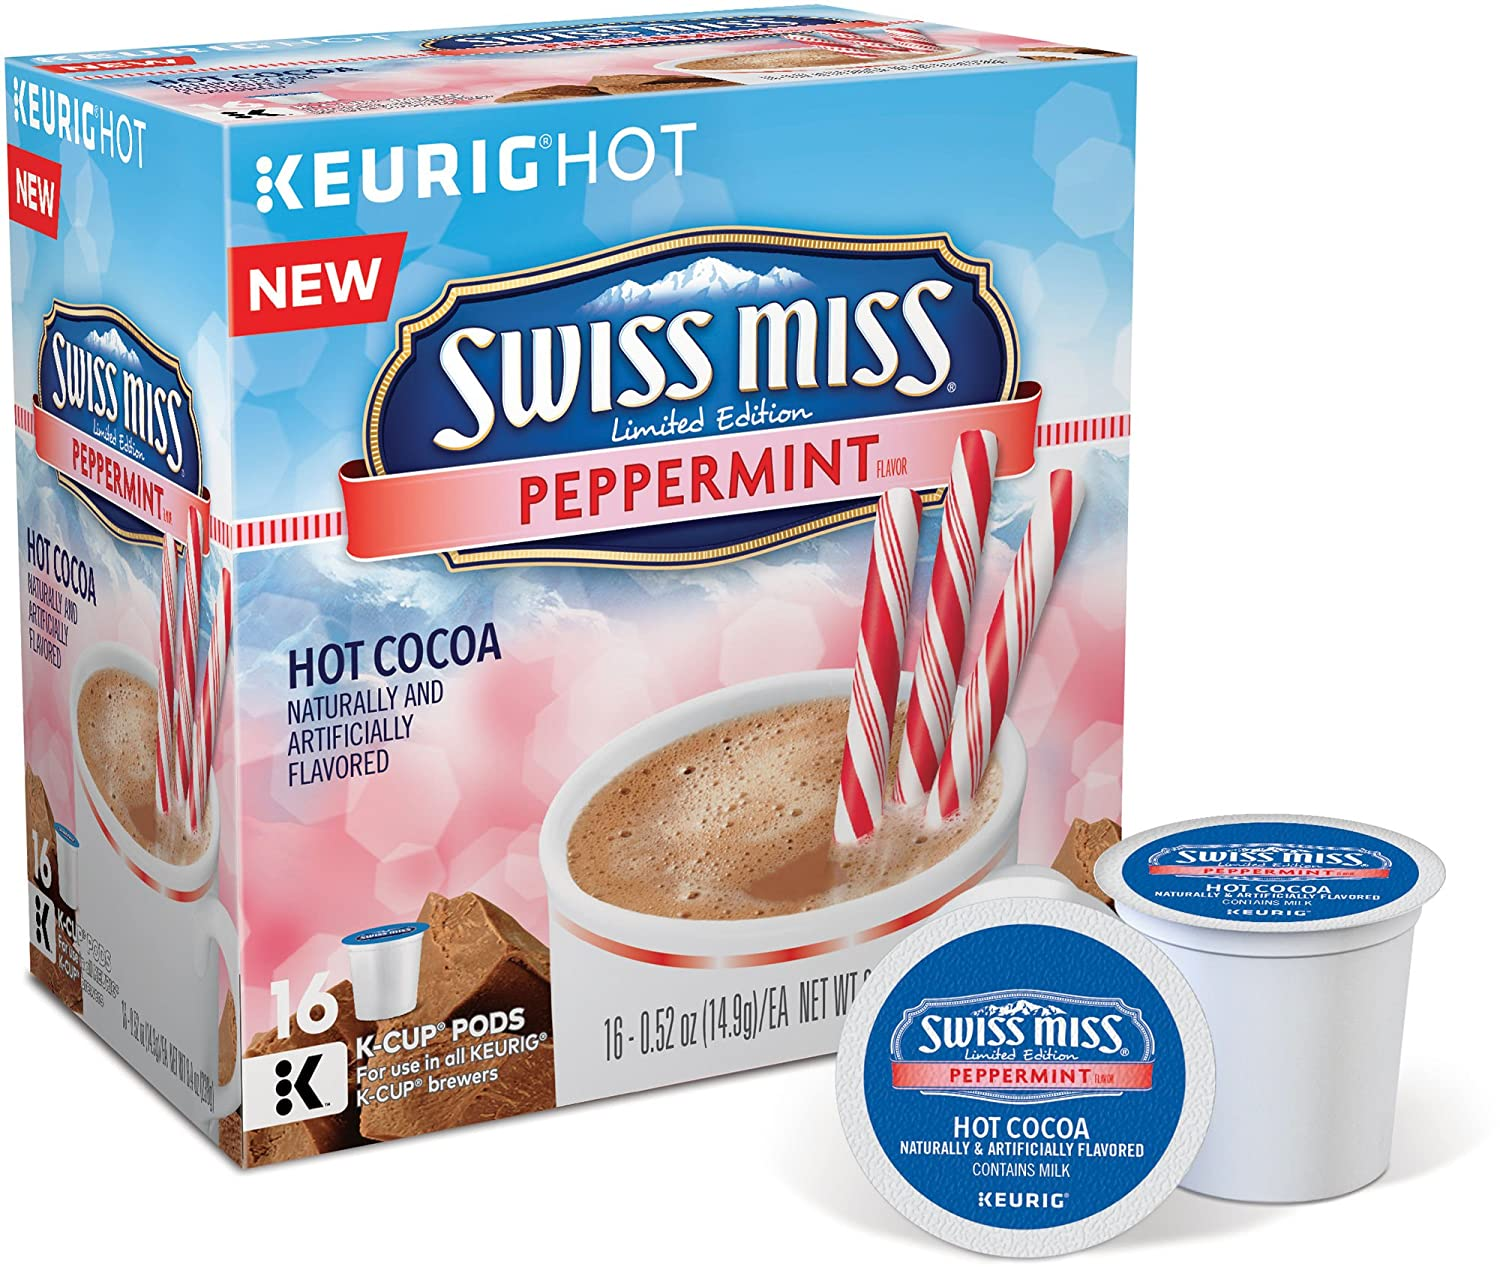 Keurig Dark Chocolate Hot Cocoa Nutrition